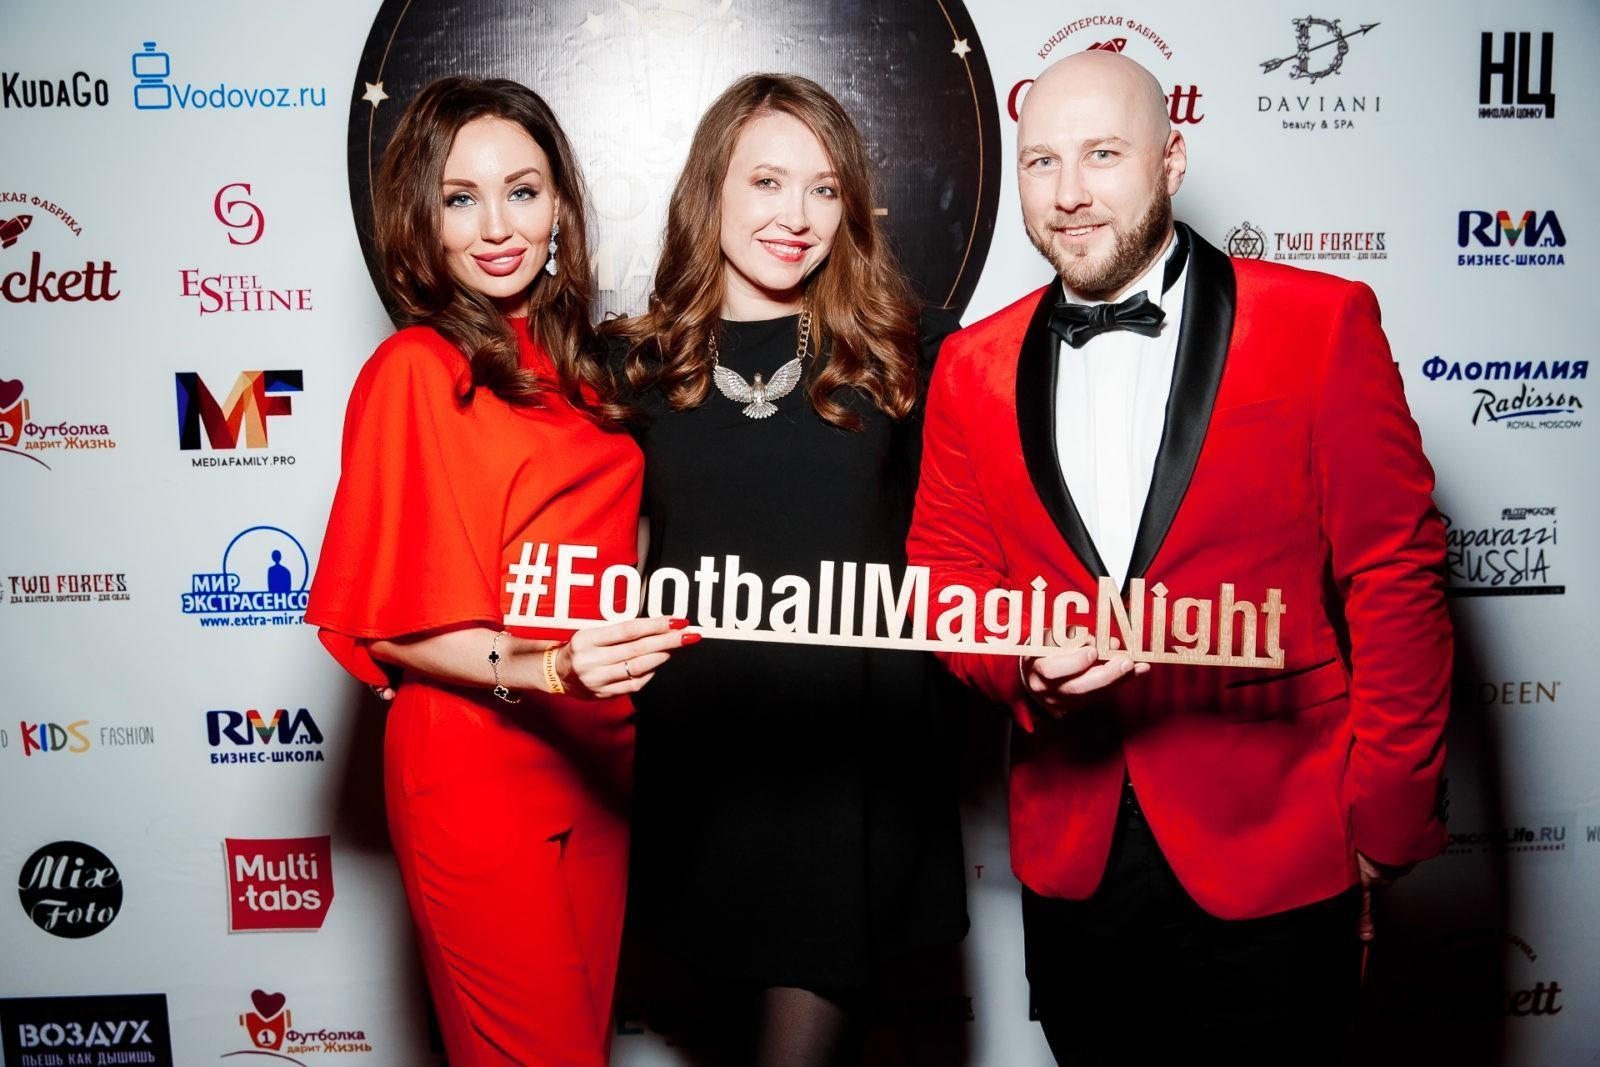 FOOTBALL MAGIC NIGHT 6